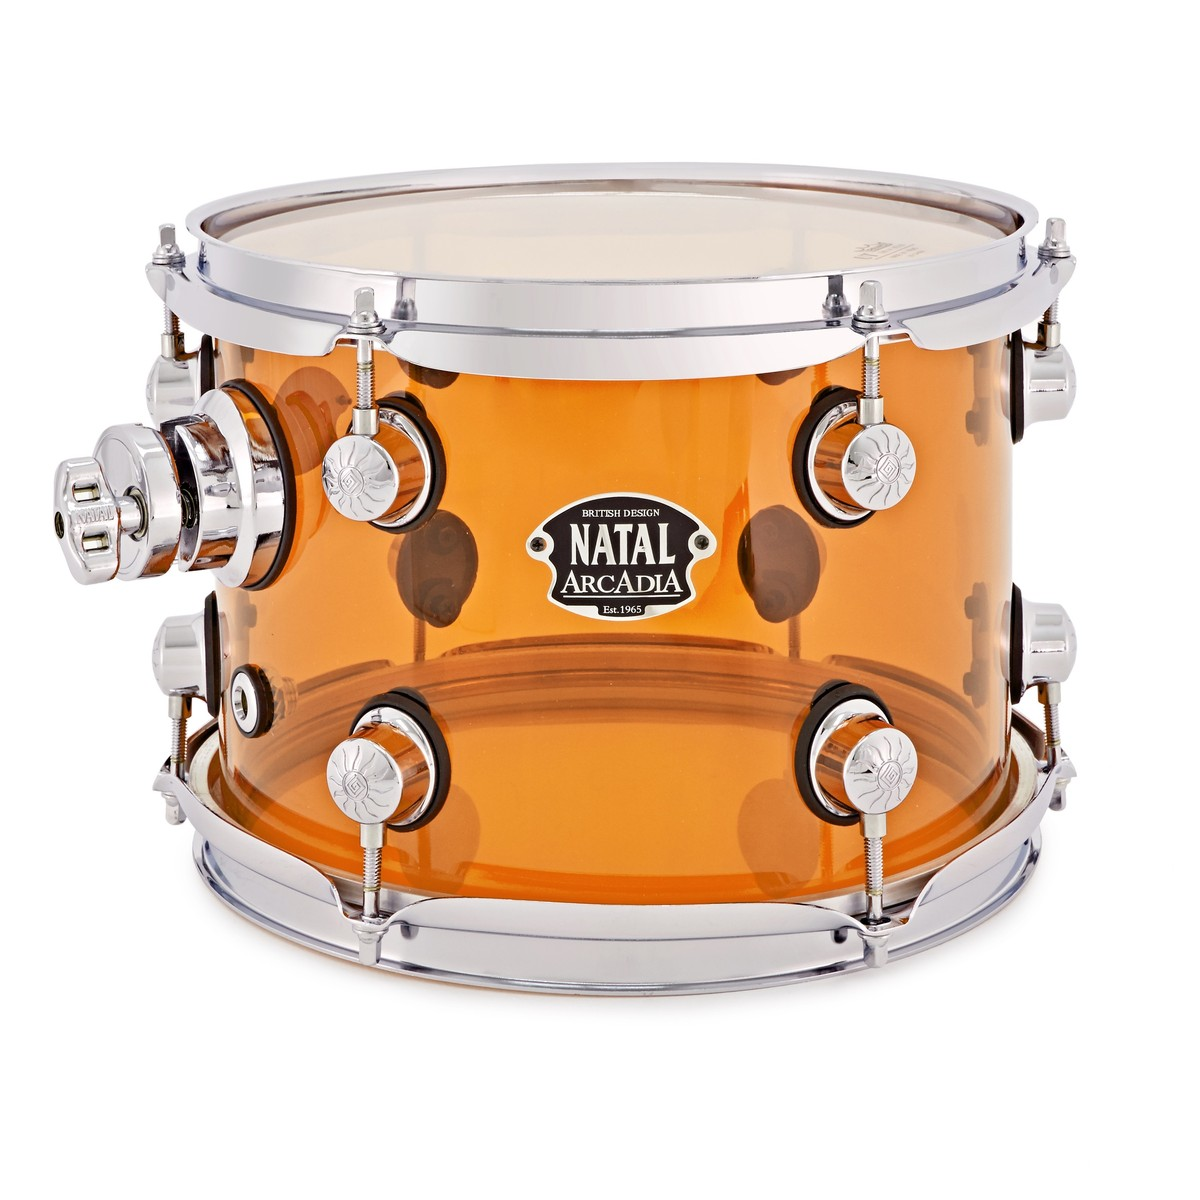 Natal Arcadia Acrylic 10 x 7 Rack Tom, Transparent Orange